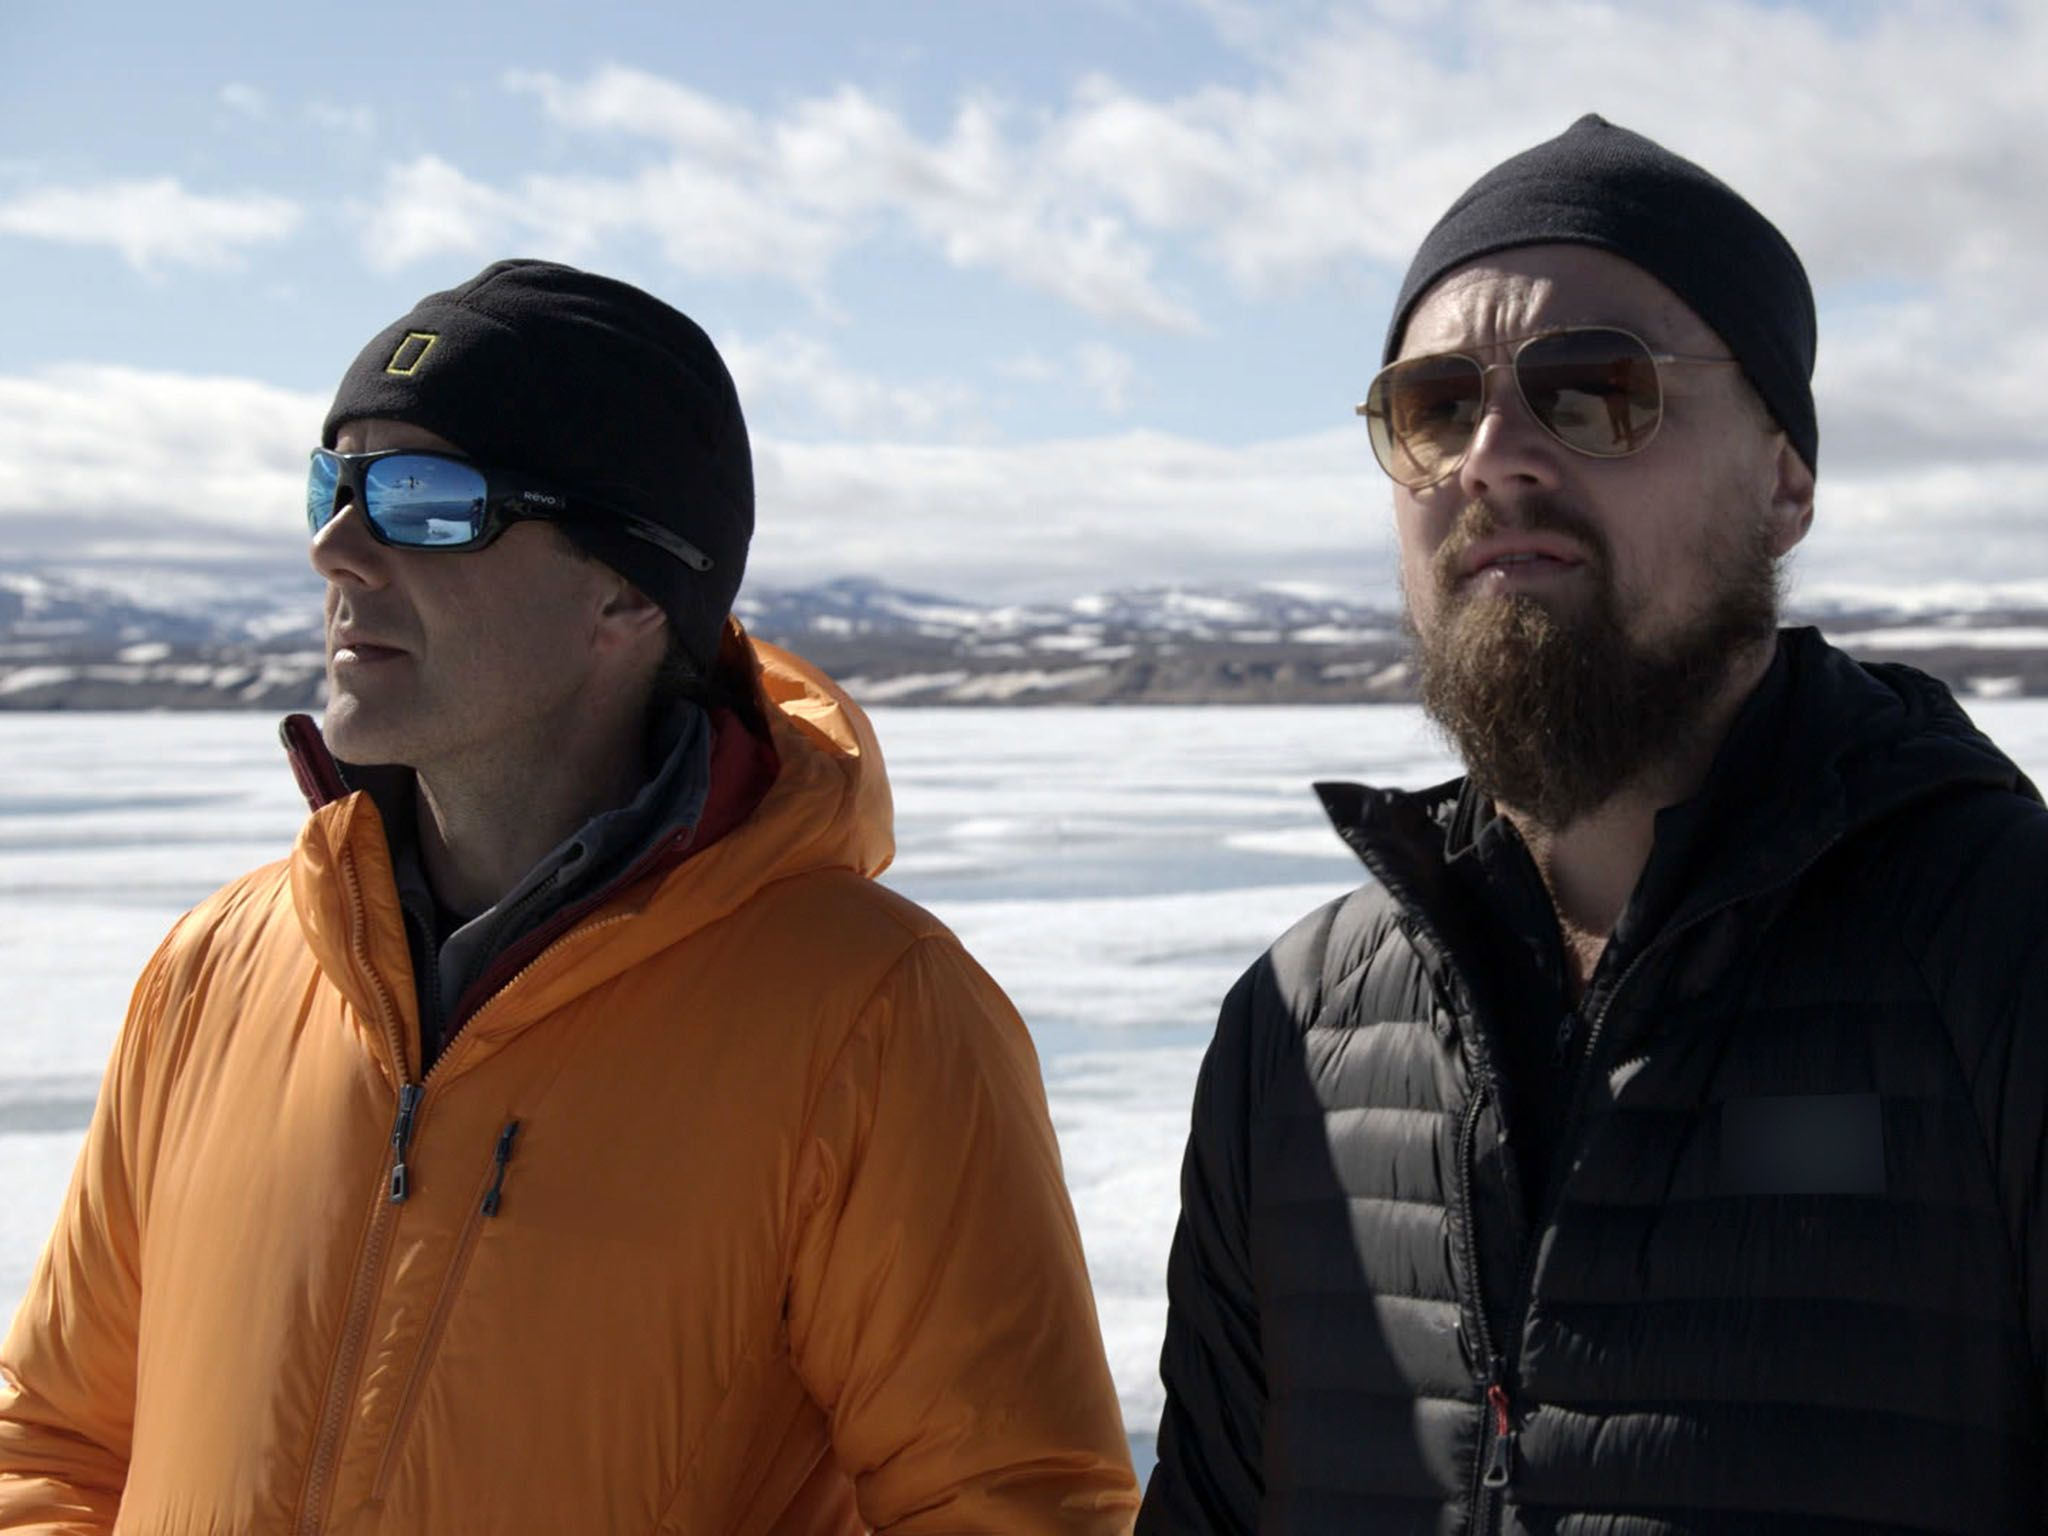 In the Arctic: Leonardo Interview with Enric Sala about meltwater. For two years, Leonardo... [Photo of the day - اکتوبر 2016]